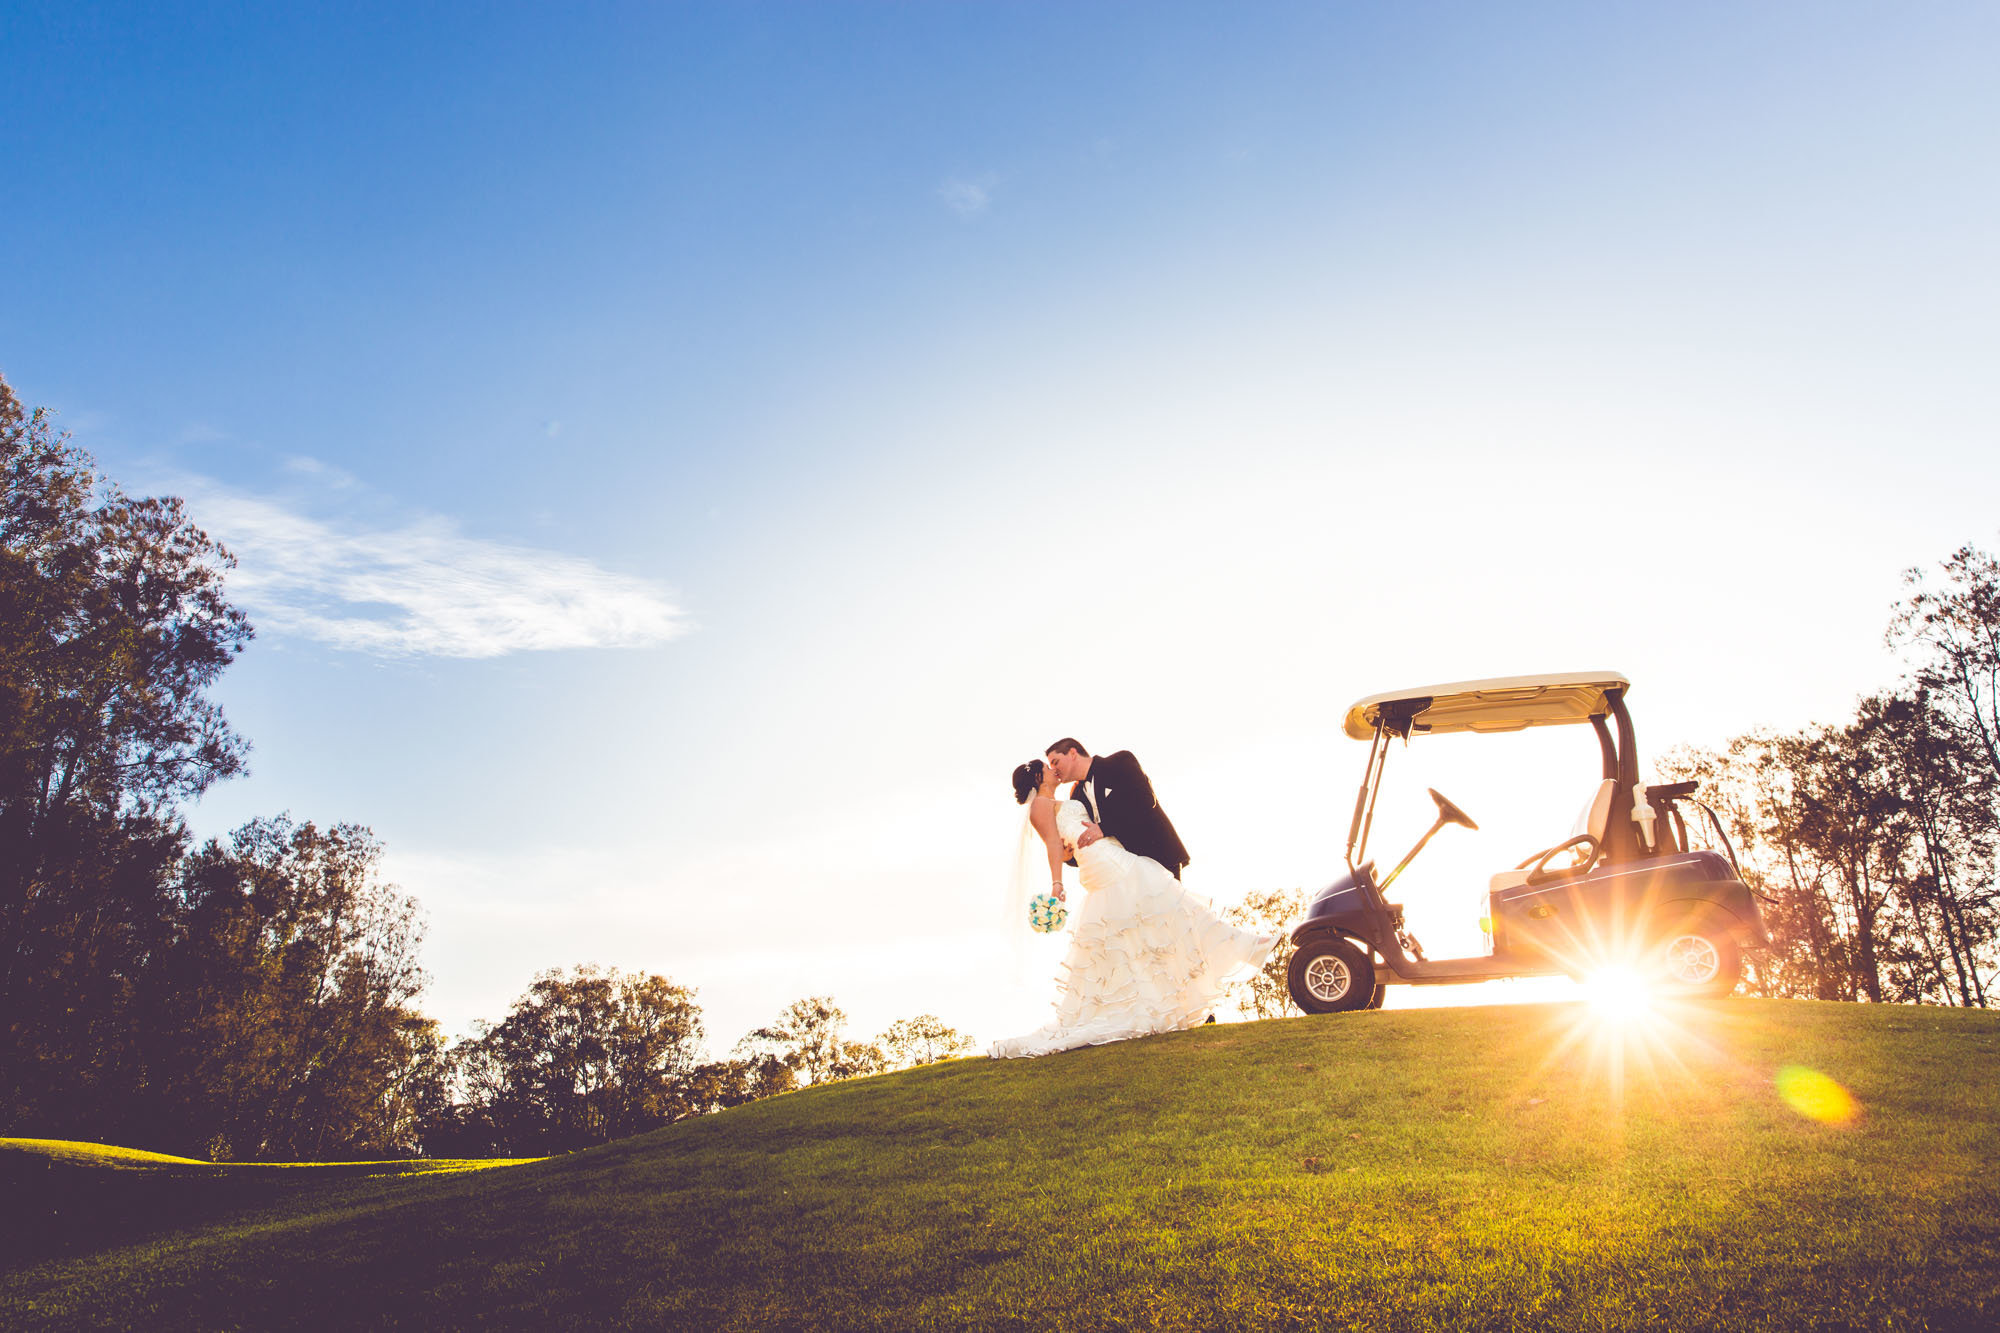 Gold Cart Gainsborough Greens Gold Coast Wedding Photography Anna Osetroff